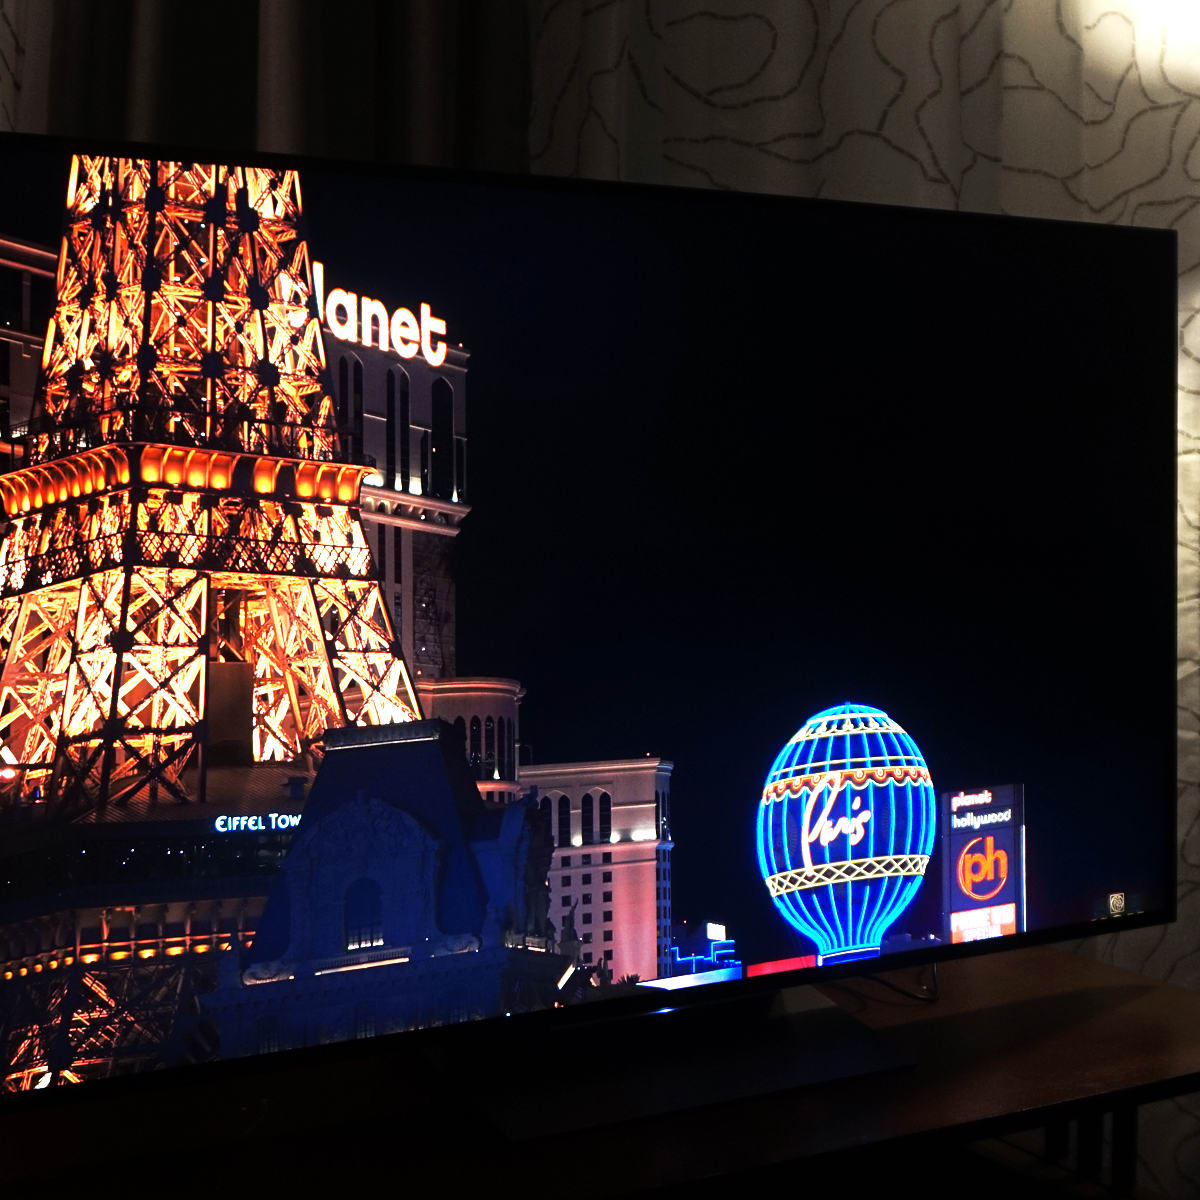 WHY DOES MY 4K TV LOOK BLURRY SONY - Panasonic EZ952 review